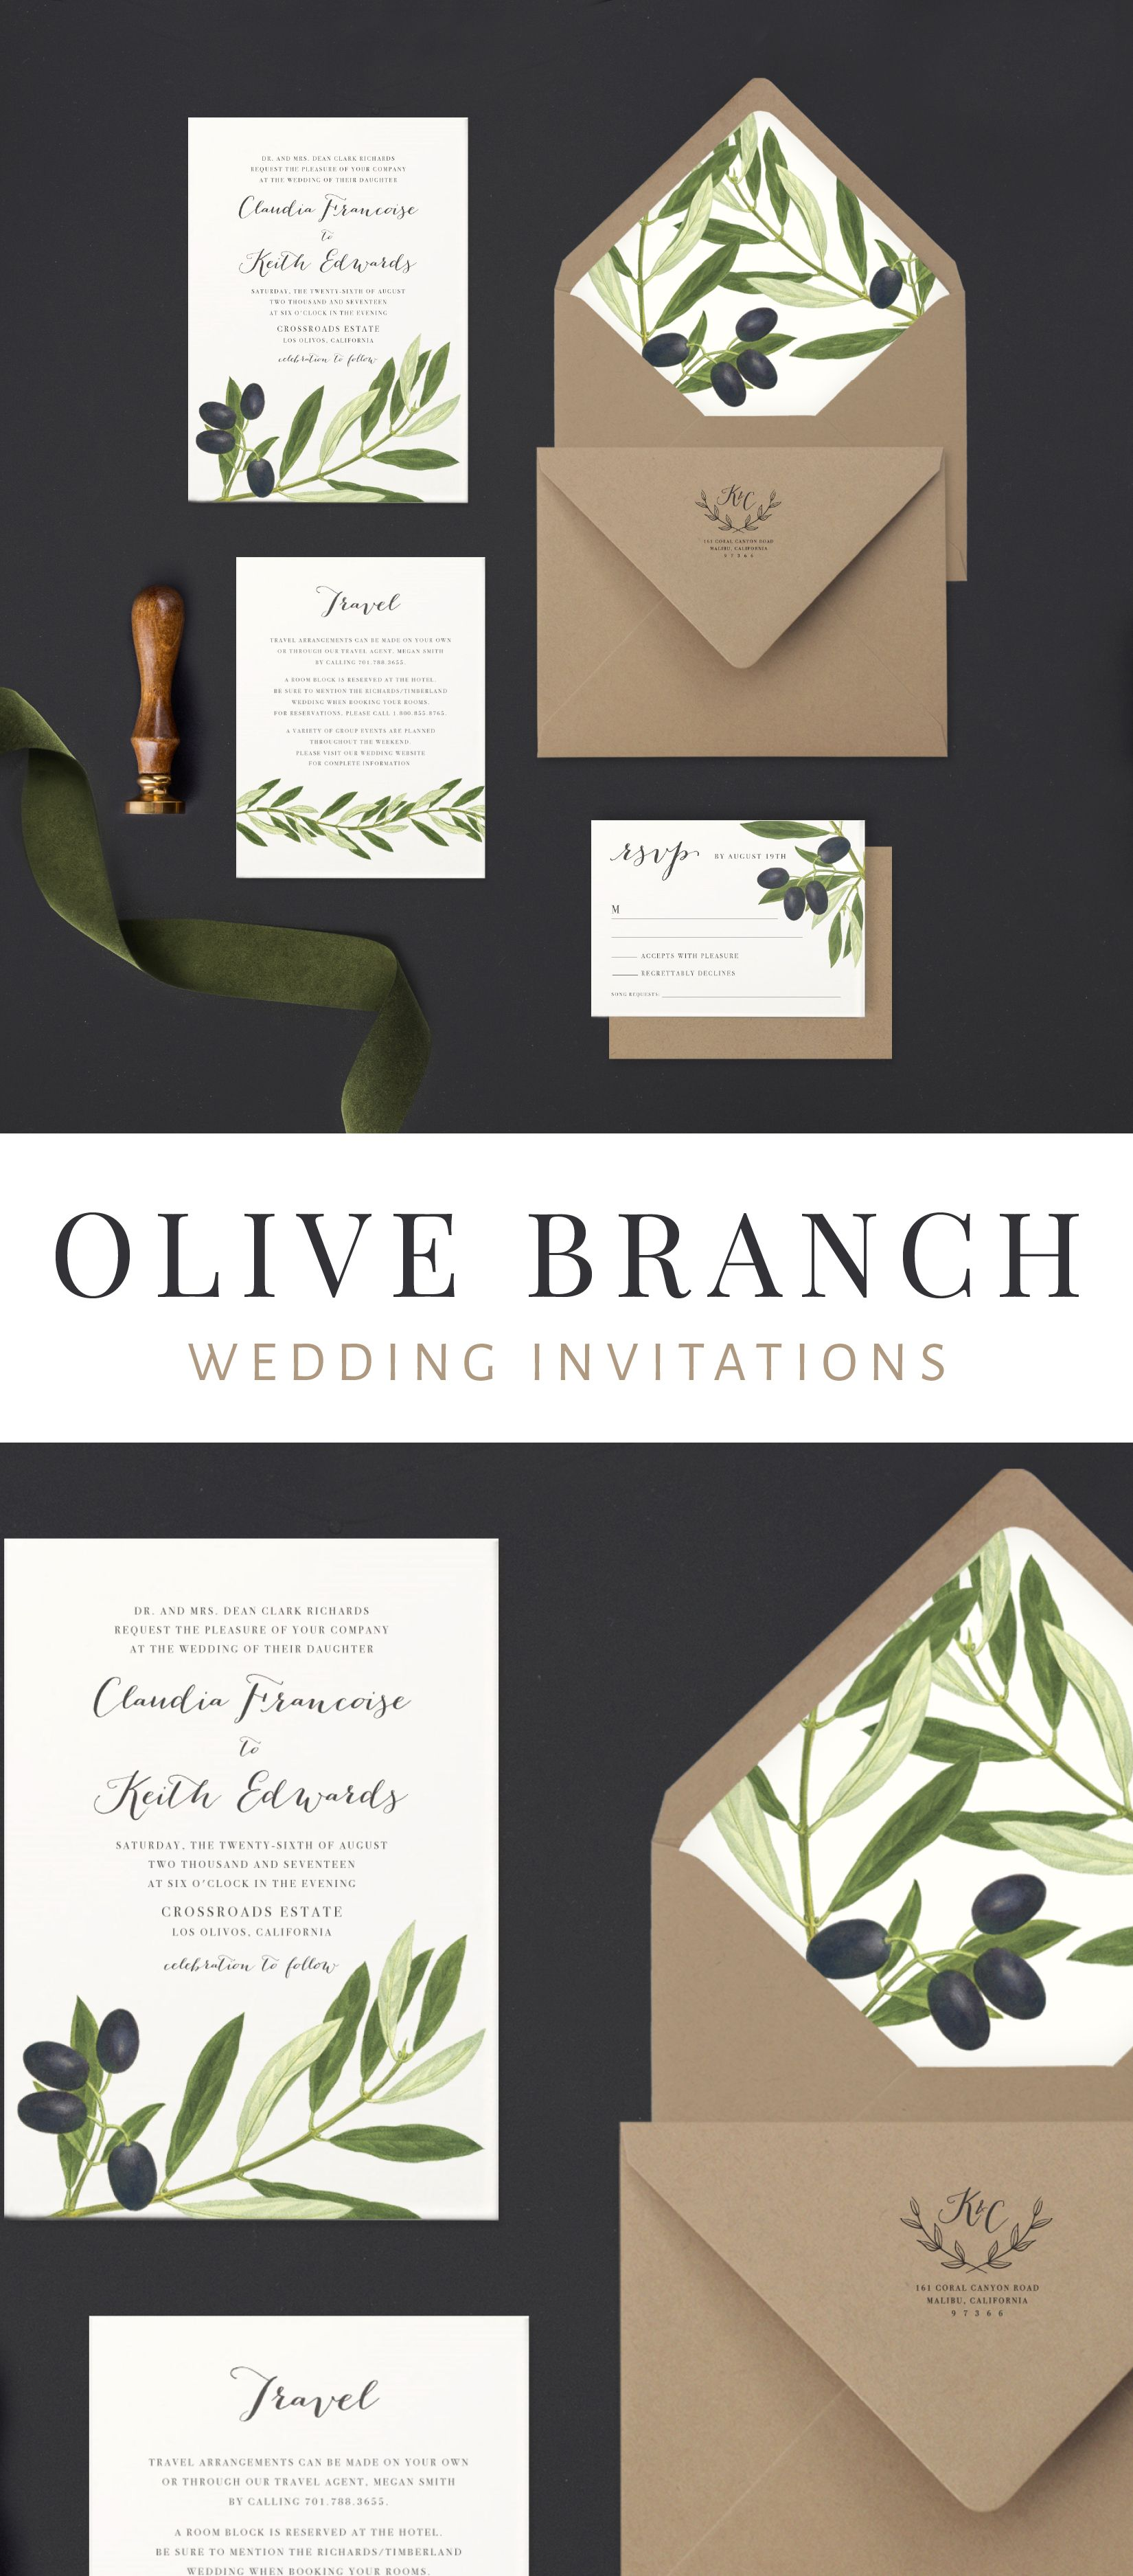 wedding invitation mint green%0A A modern and elegant organic inspired wedding invitation  clean  but full  of creativity  perfect to get your guests ready for your mediterranean  themed